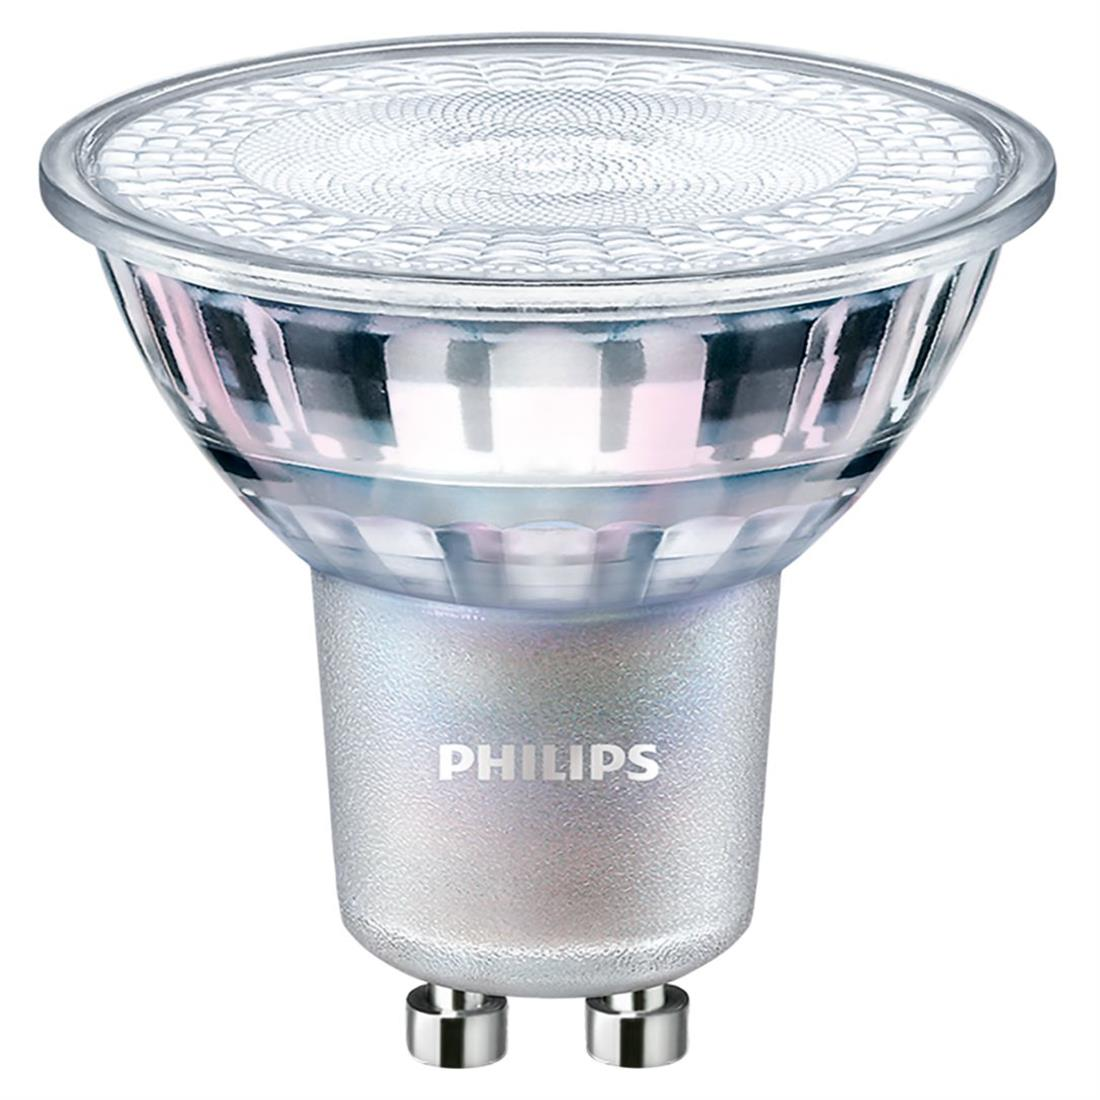 PHILIPS GU10 led lamp dimbaar 3.7W-35W warmwit 2700 kelvin 60gr CRI90